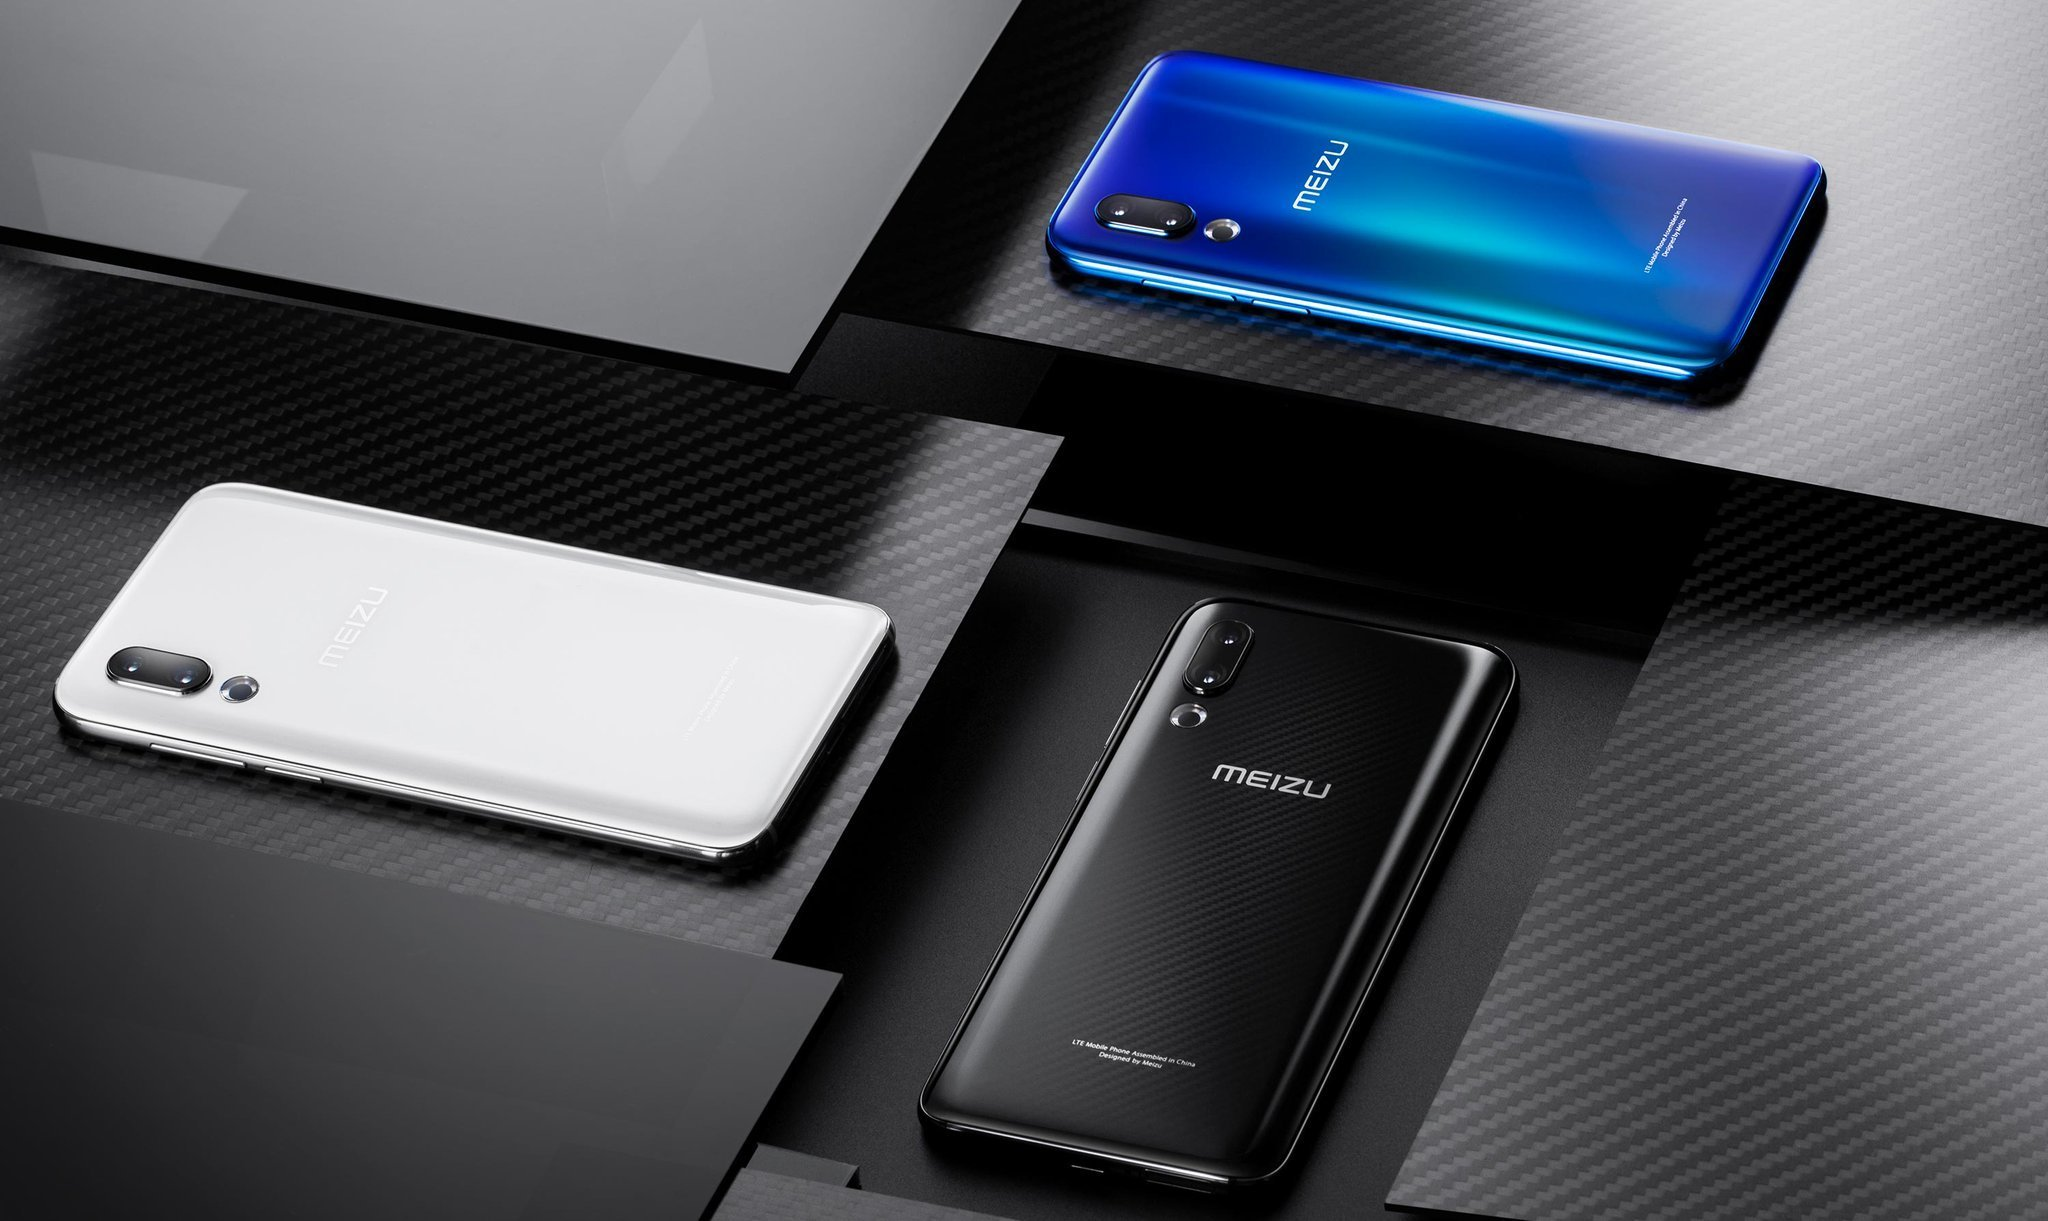 Meizu 16s ; highly new feathers